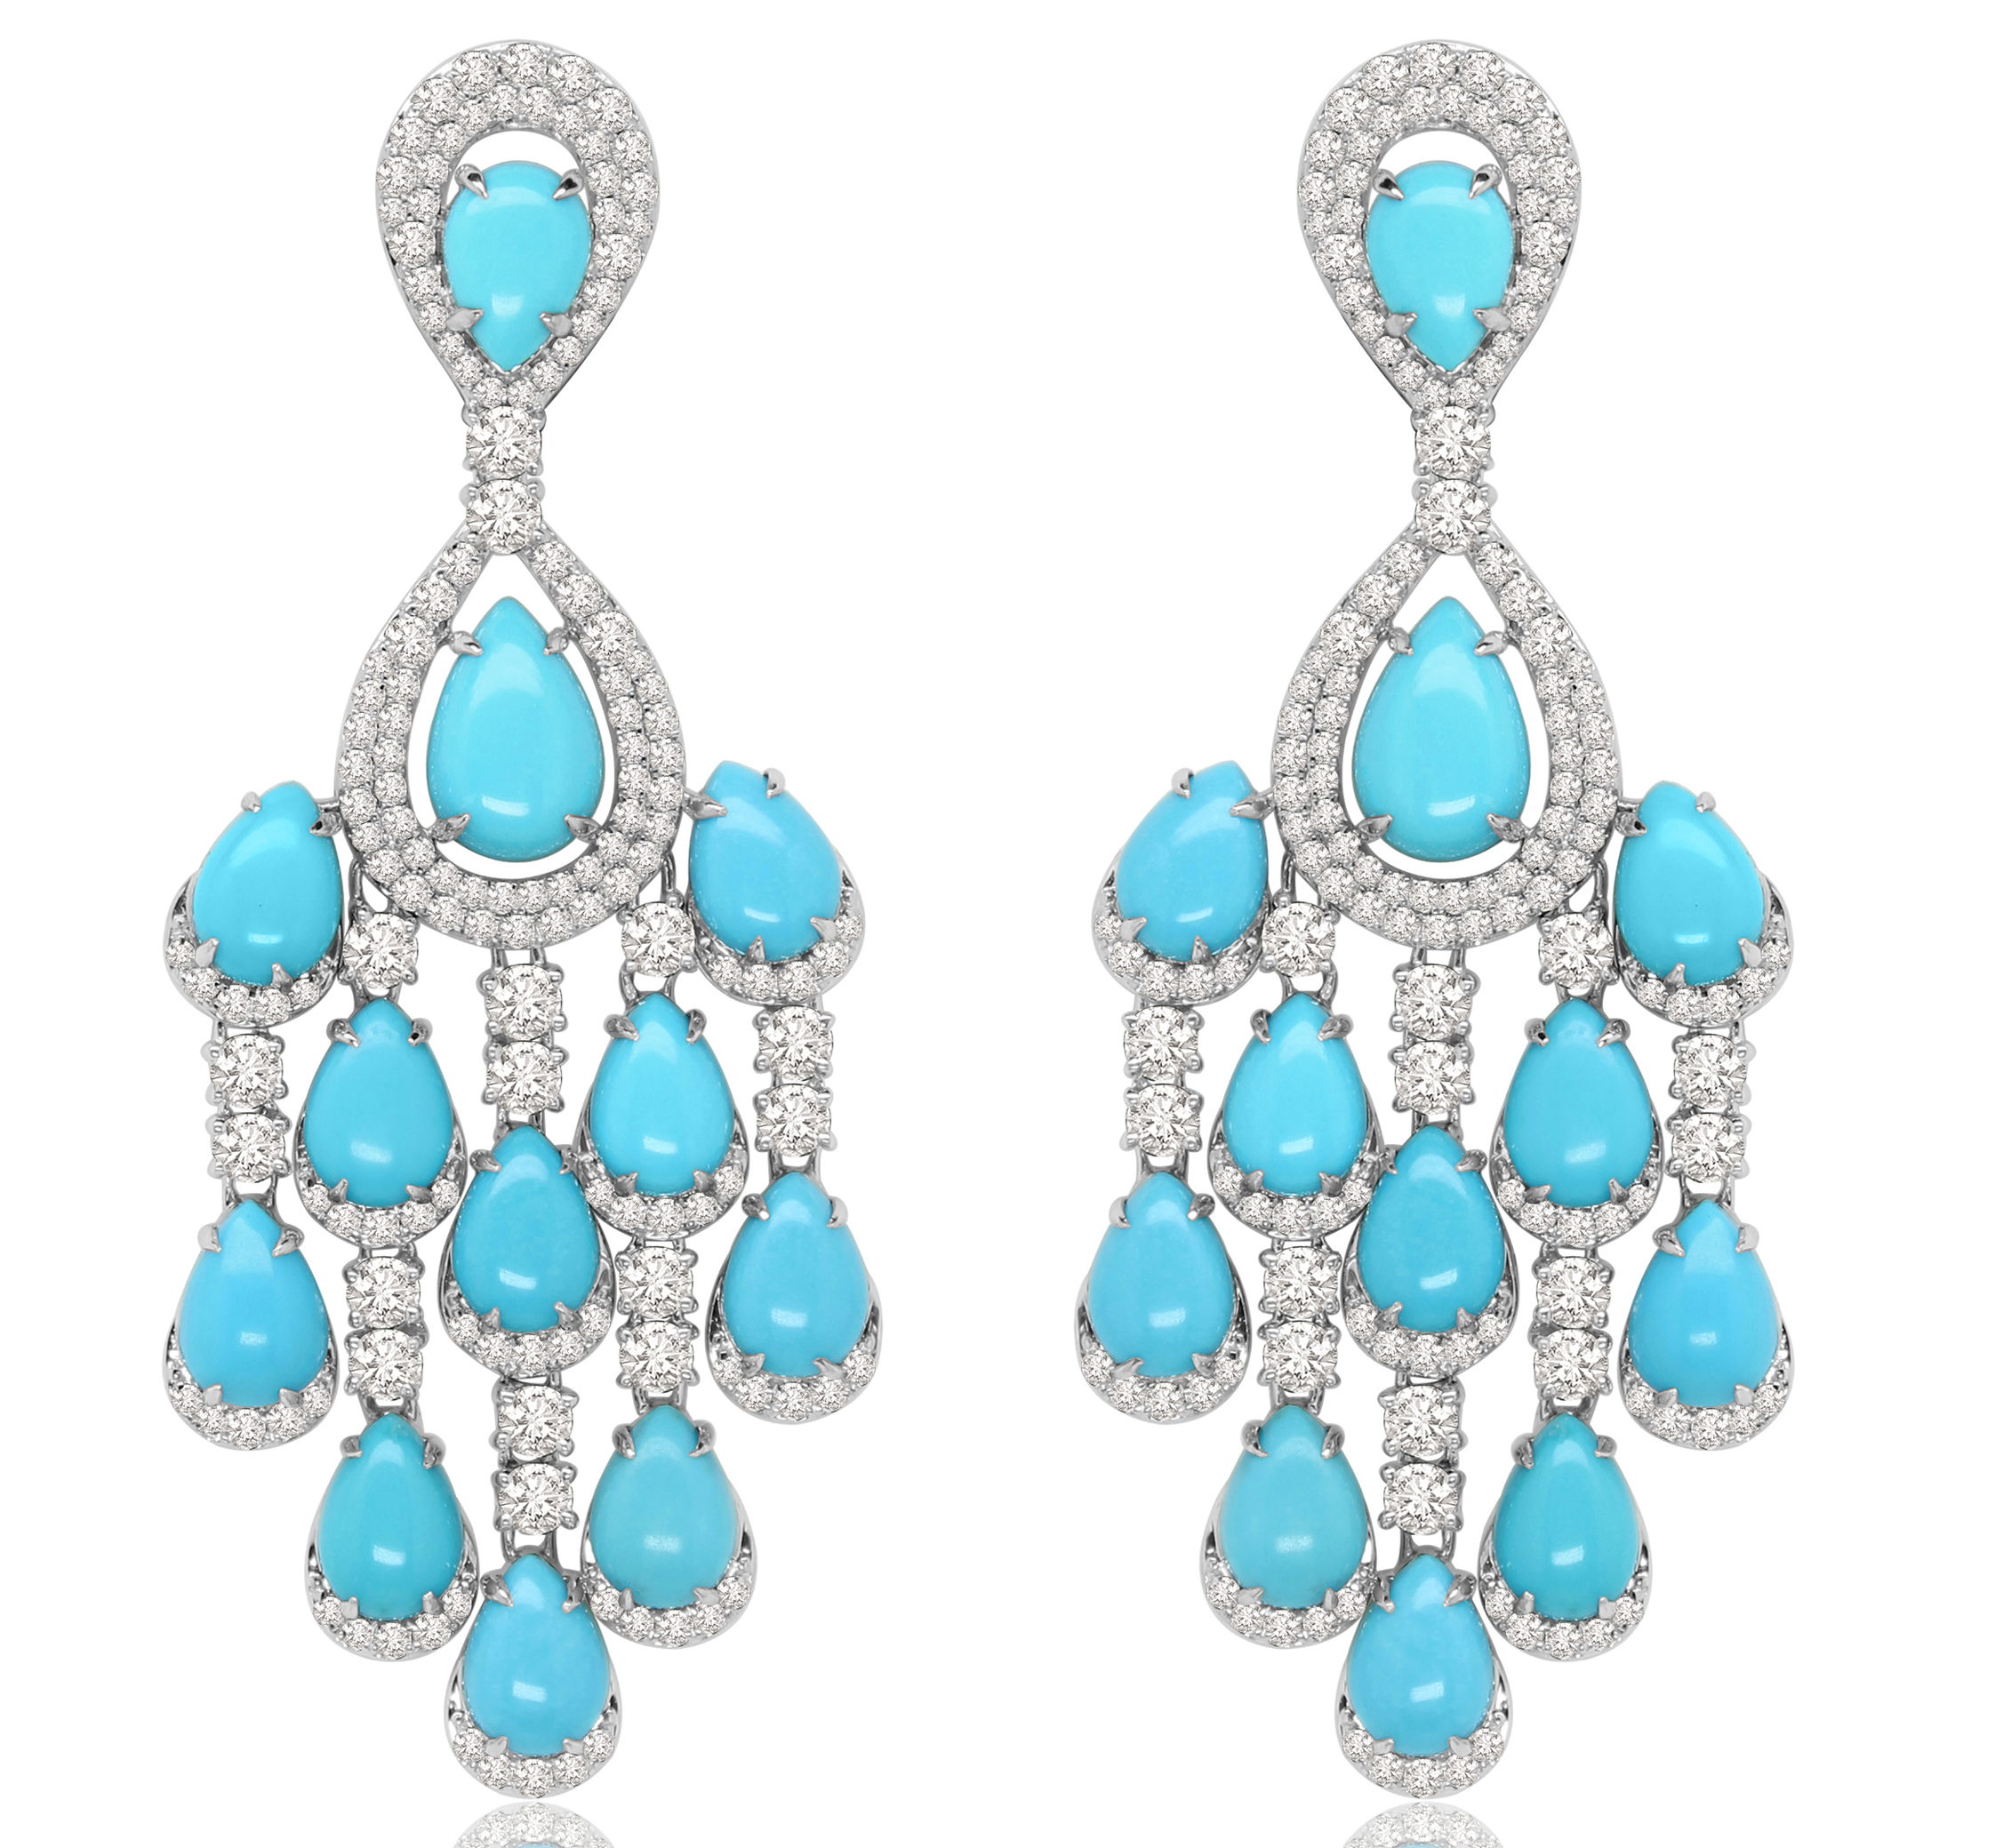 Sutra Turquoise Chandelier Earrings Jck On Your Market